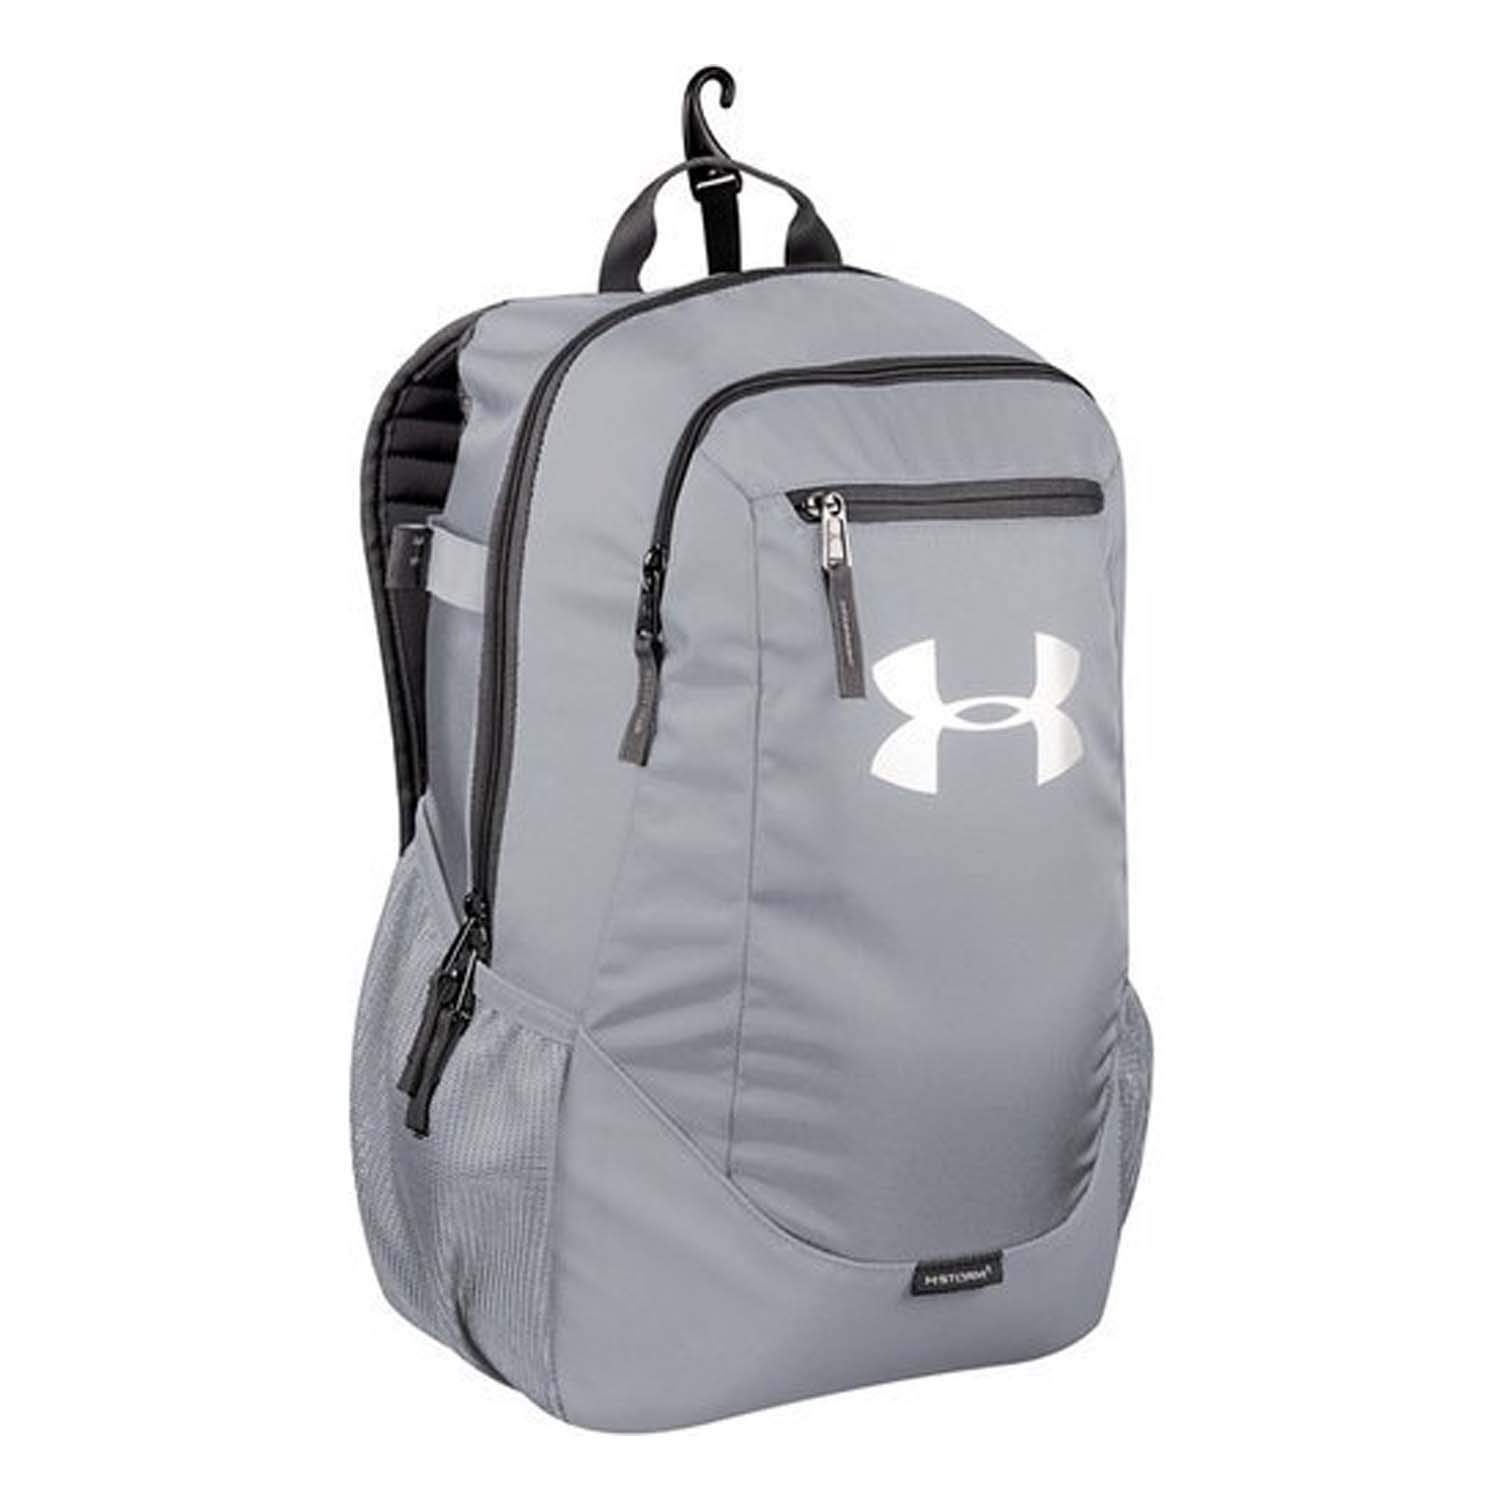 Under Armour Hustle II Bat Pack Graphite UASB-HBP2-GY by Under Armour